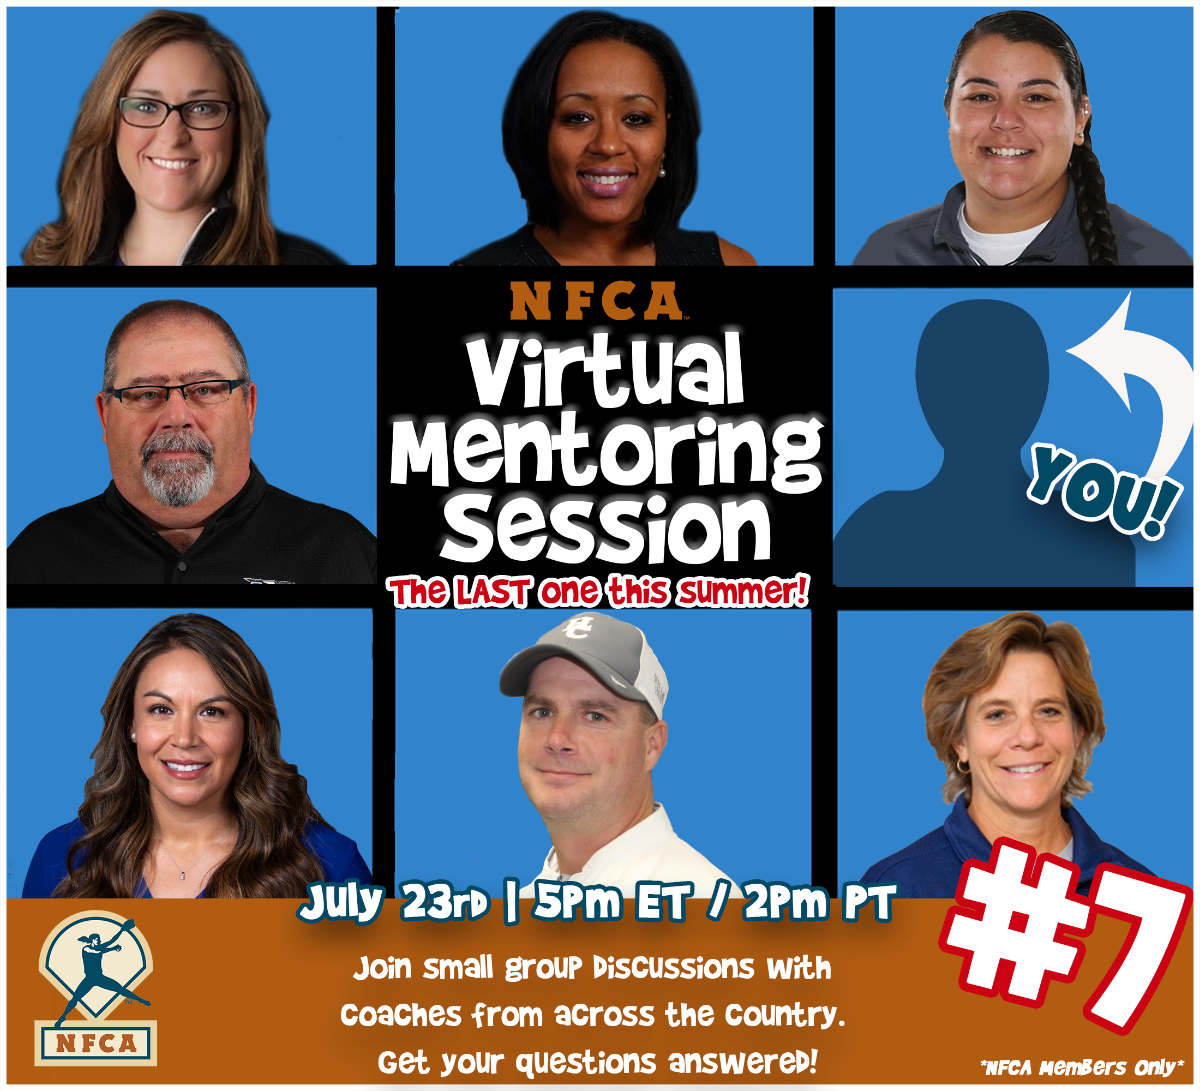 July 23, 2020 | Virtual Mentoring Session